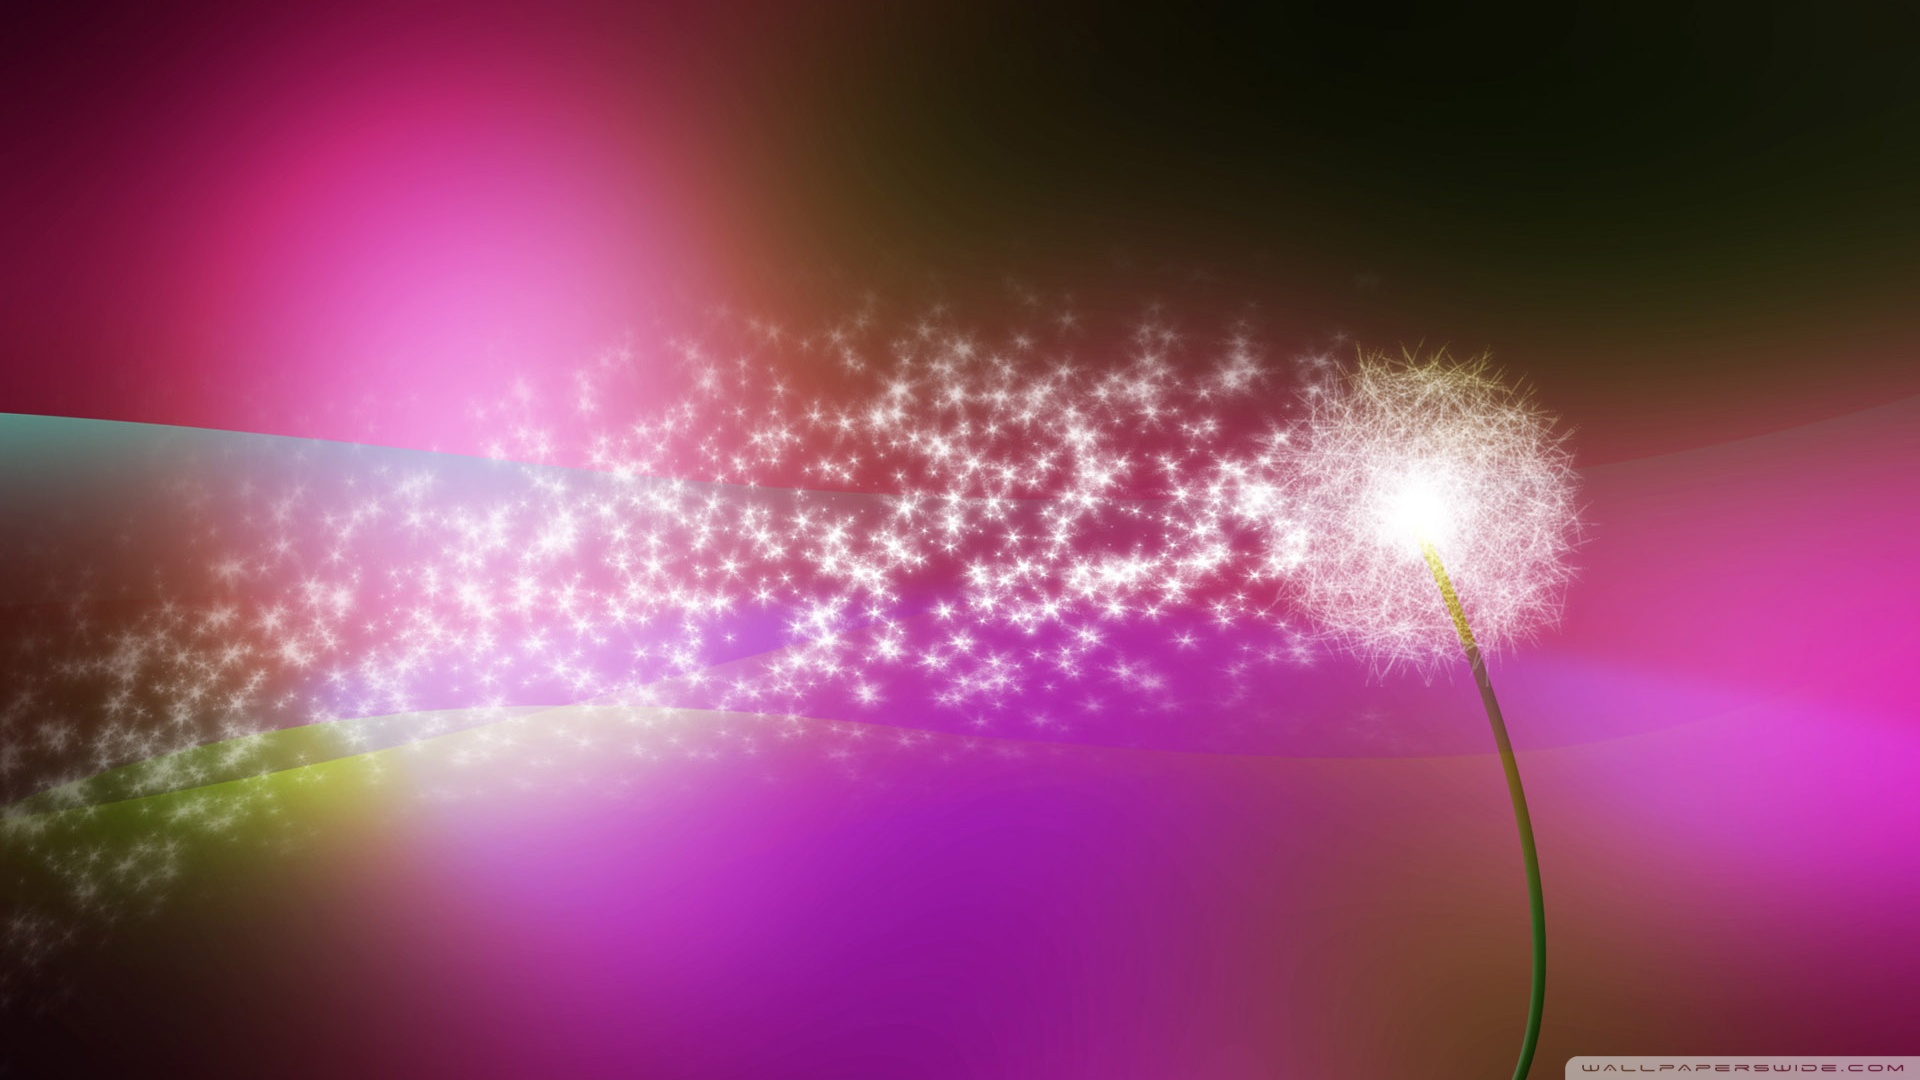 Dandelion Blowing In The Wind Wallpaper 1920x1080 Dandelion, Blowing ...